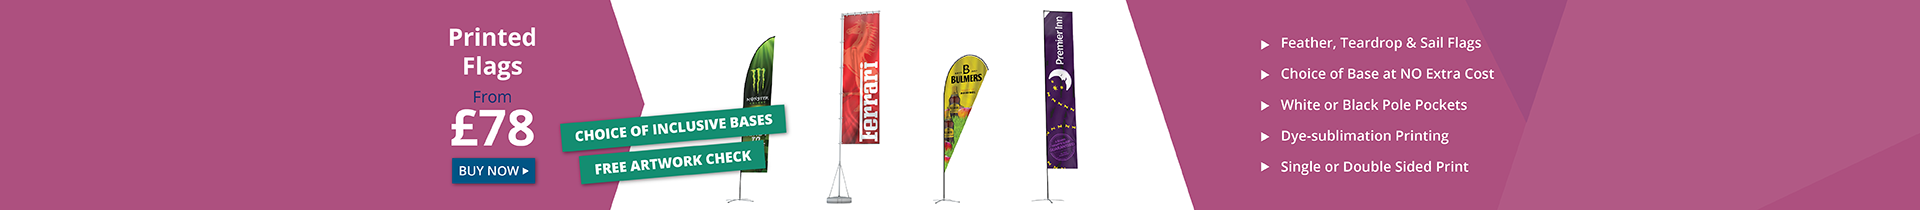 Outdoor Displays & Printed Promotional Flags